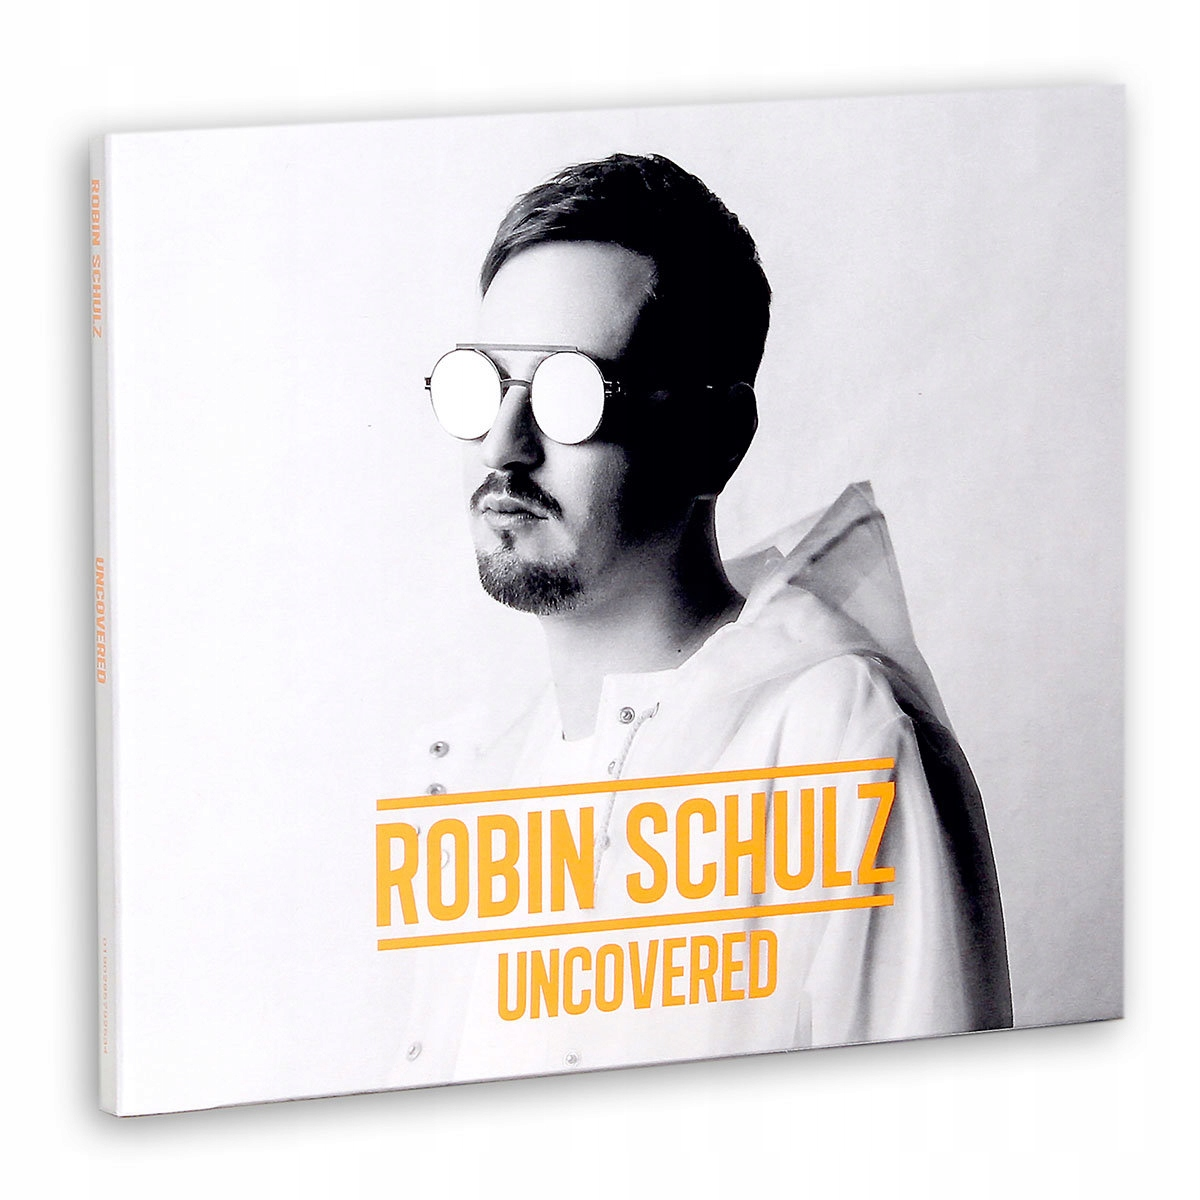 ROBIN SCHULZ - Uncovered (Limited Edition) (CD)